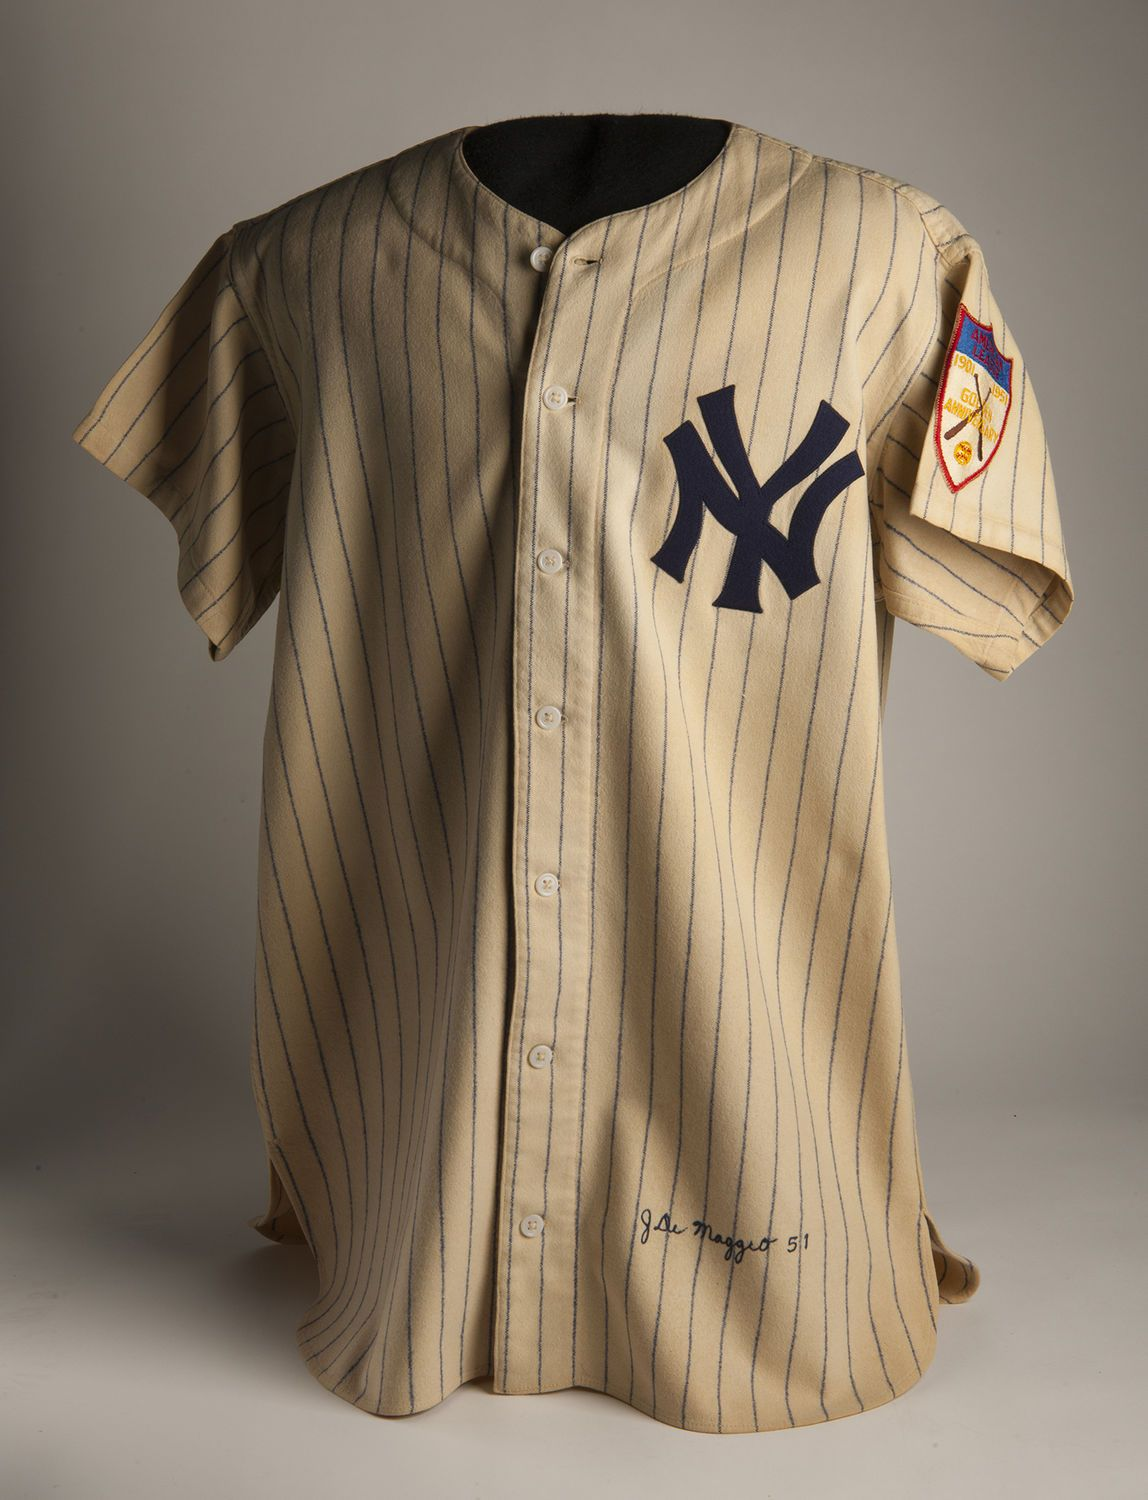 45d25f4e8aa After his number 5 was retired by the New York Yankees in 1952